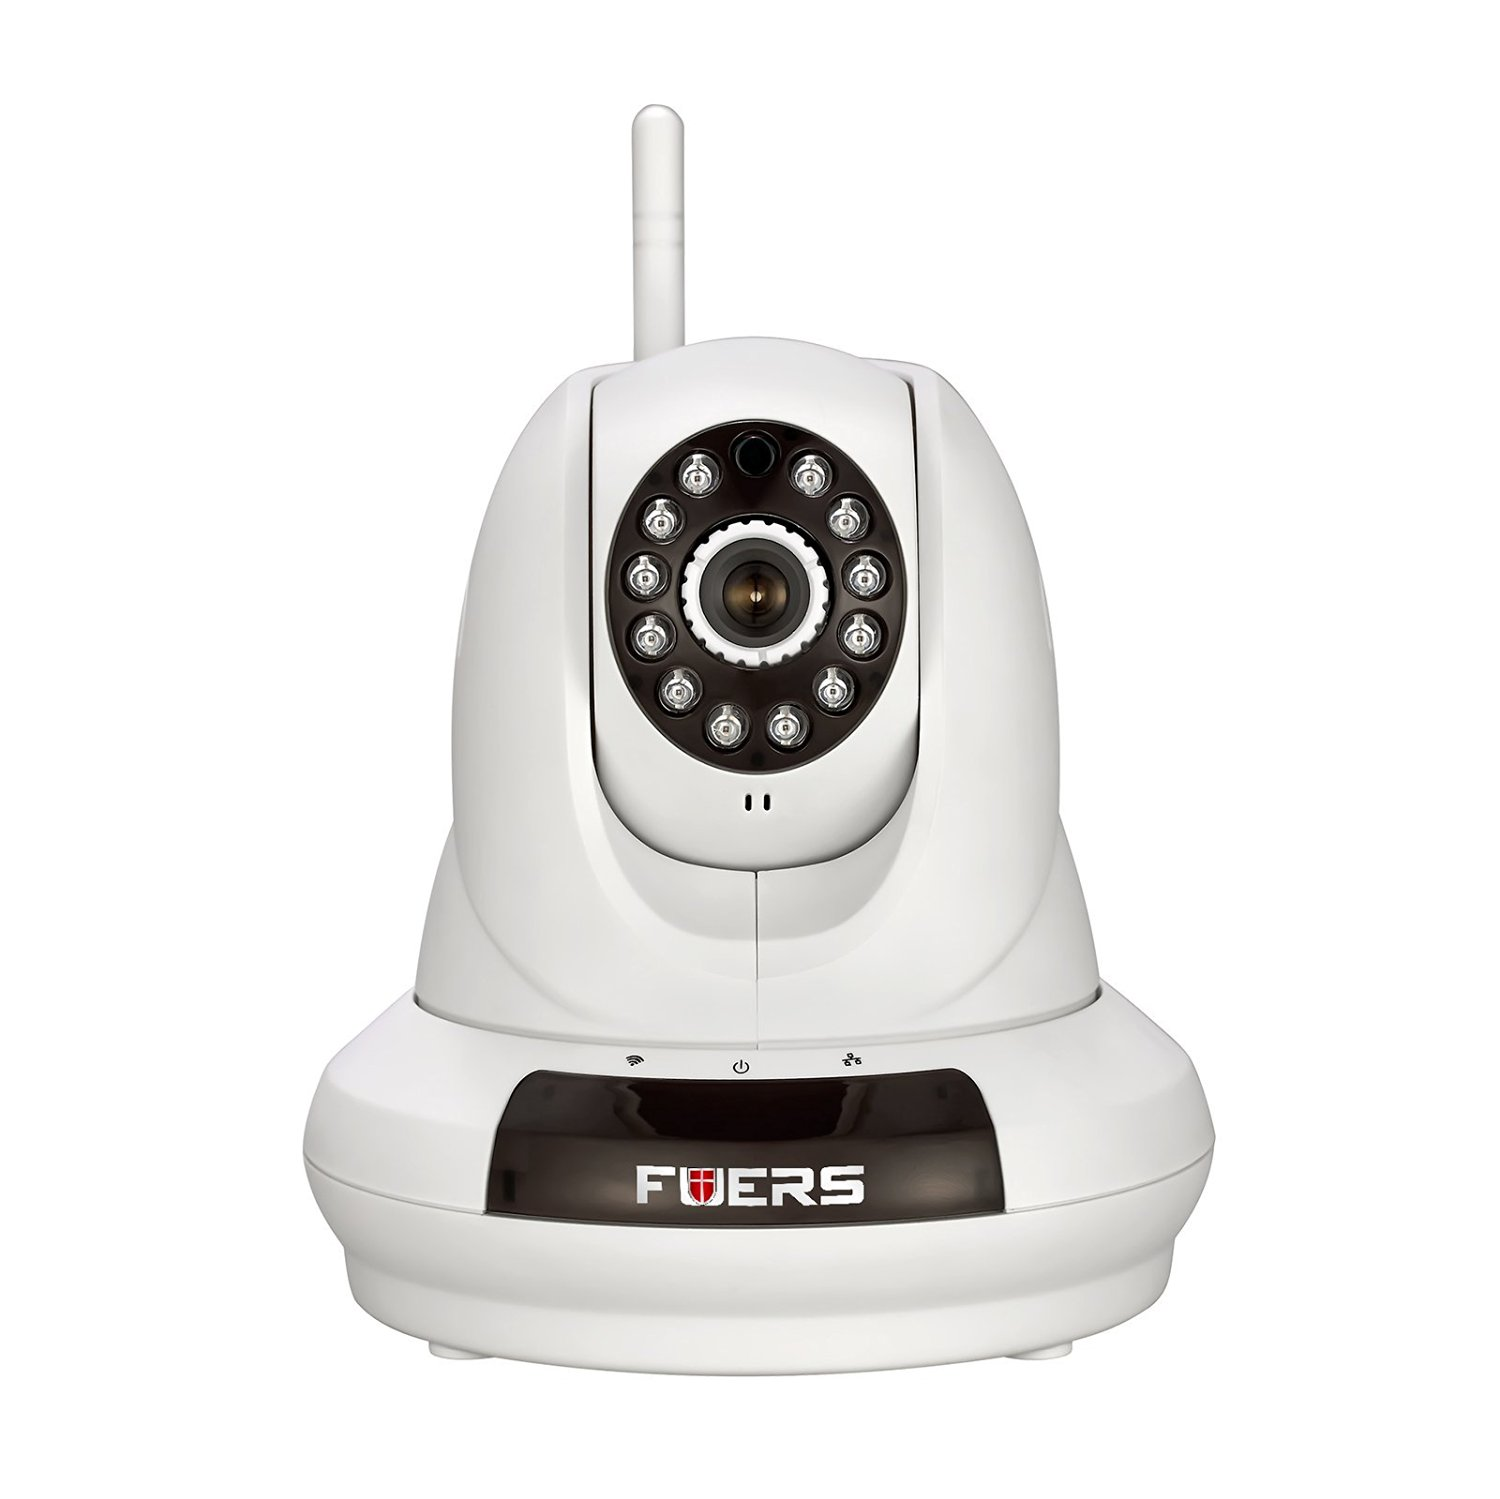 Fuers FI-366 720P WiFi Security Camera Internet Surveillance Camera,Pan/Tilt with 2-Way Audio,Baby Video Monitor, Night Vision Wireless IP Webcam (White-720P)